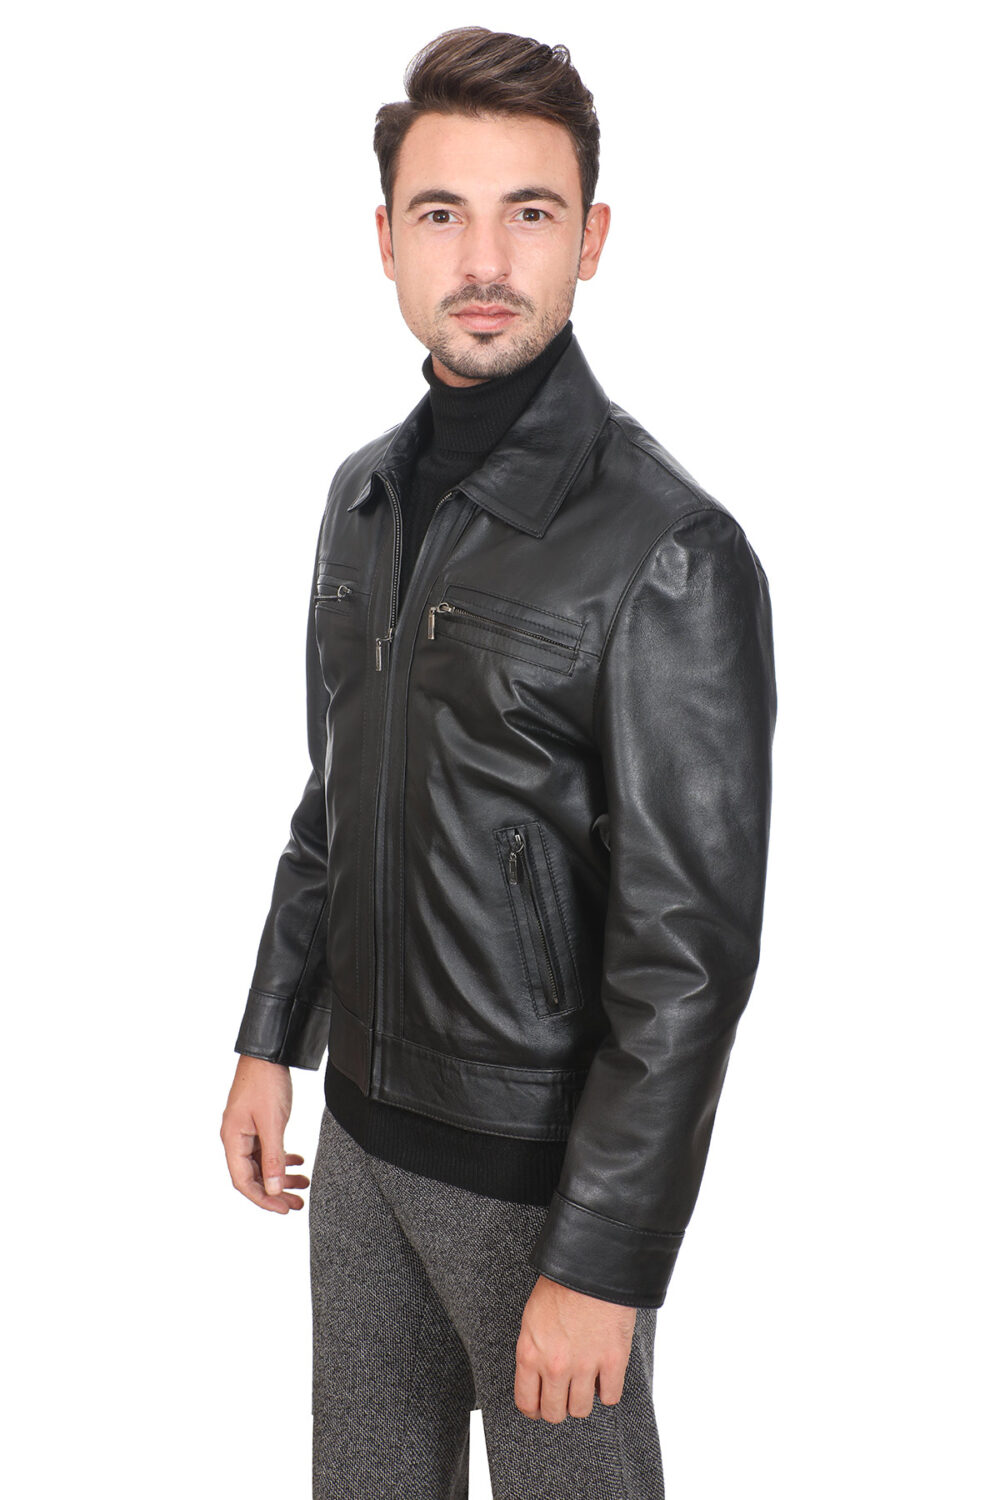 Cool Leather Jackets For Guys